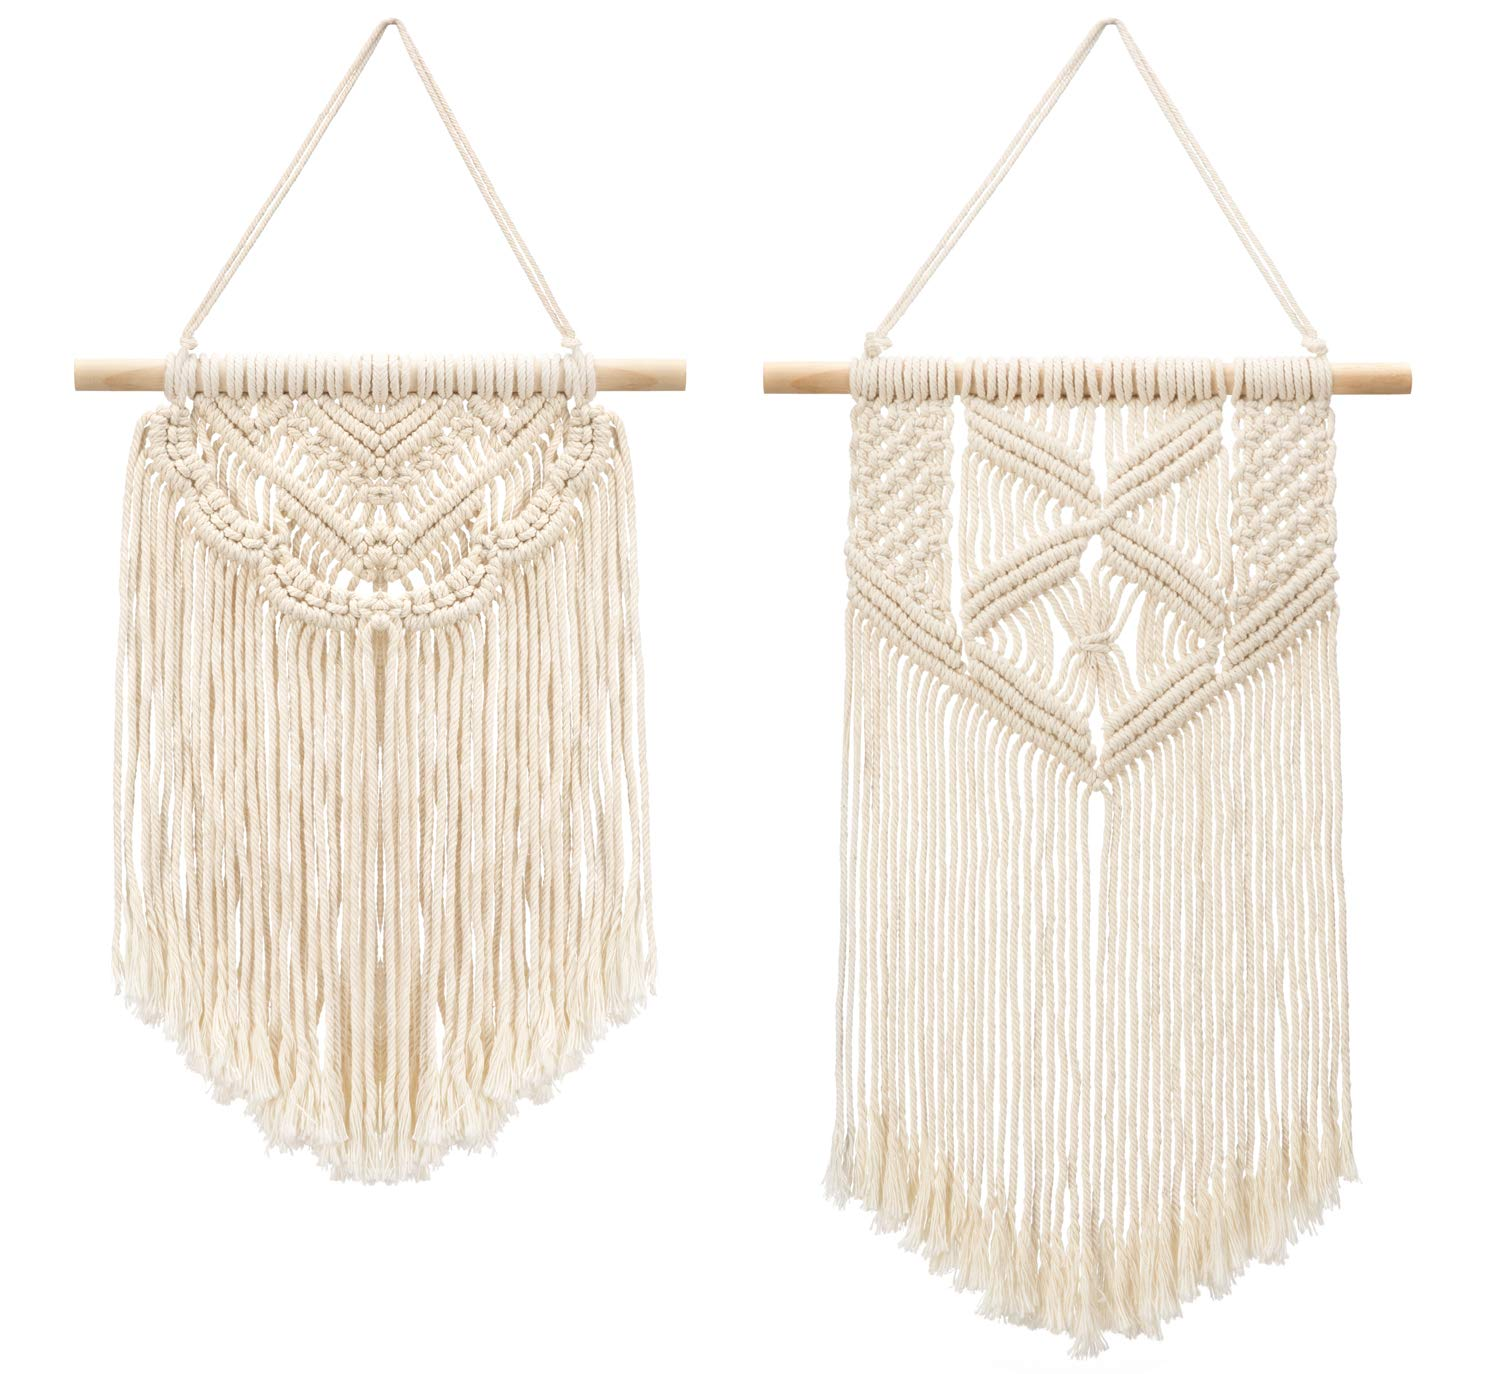 Mkono 2 Pcs Macrame Wall Hanging Small Art Woven Wall Decor Boho Chic Home Decoration for Apartment Bedroom Living Room Gallery, 13'' L x 10'' W and 16'' L x 10'' W by Mkono